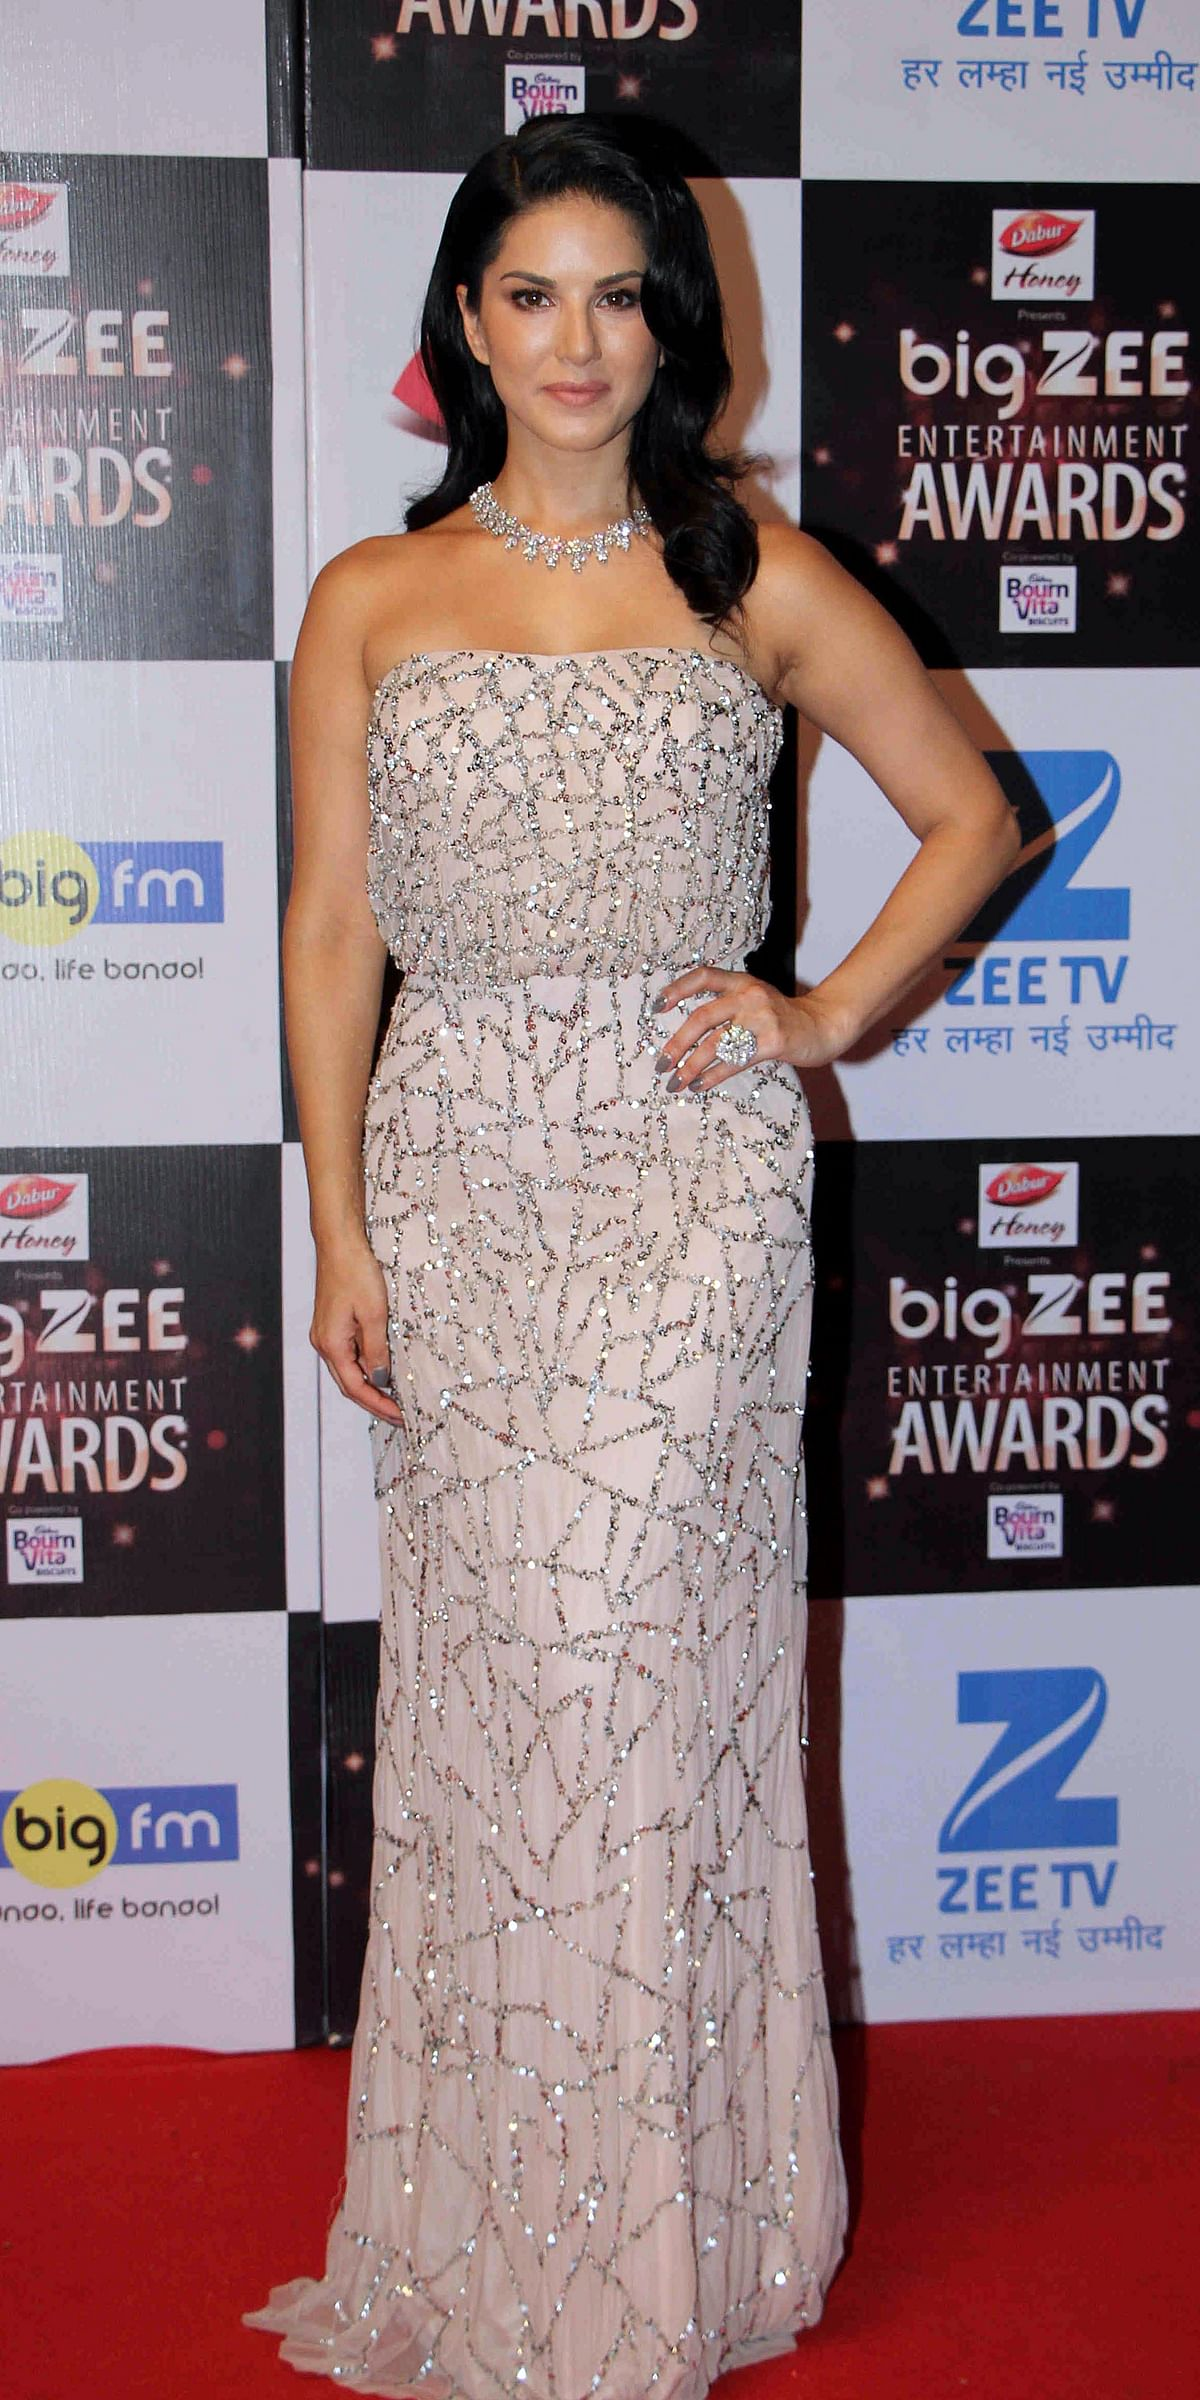 In this photograph taken on July 29, 2017, Indian Bollywood actress Sunny Leone attends the BIG ZEE Entertainment Awards 2017 ceremony in Mumbai. / AFP PHOTO / STR